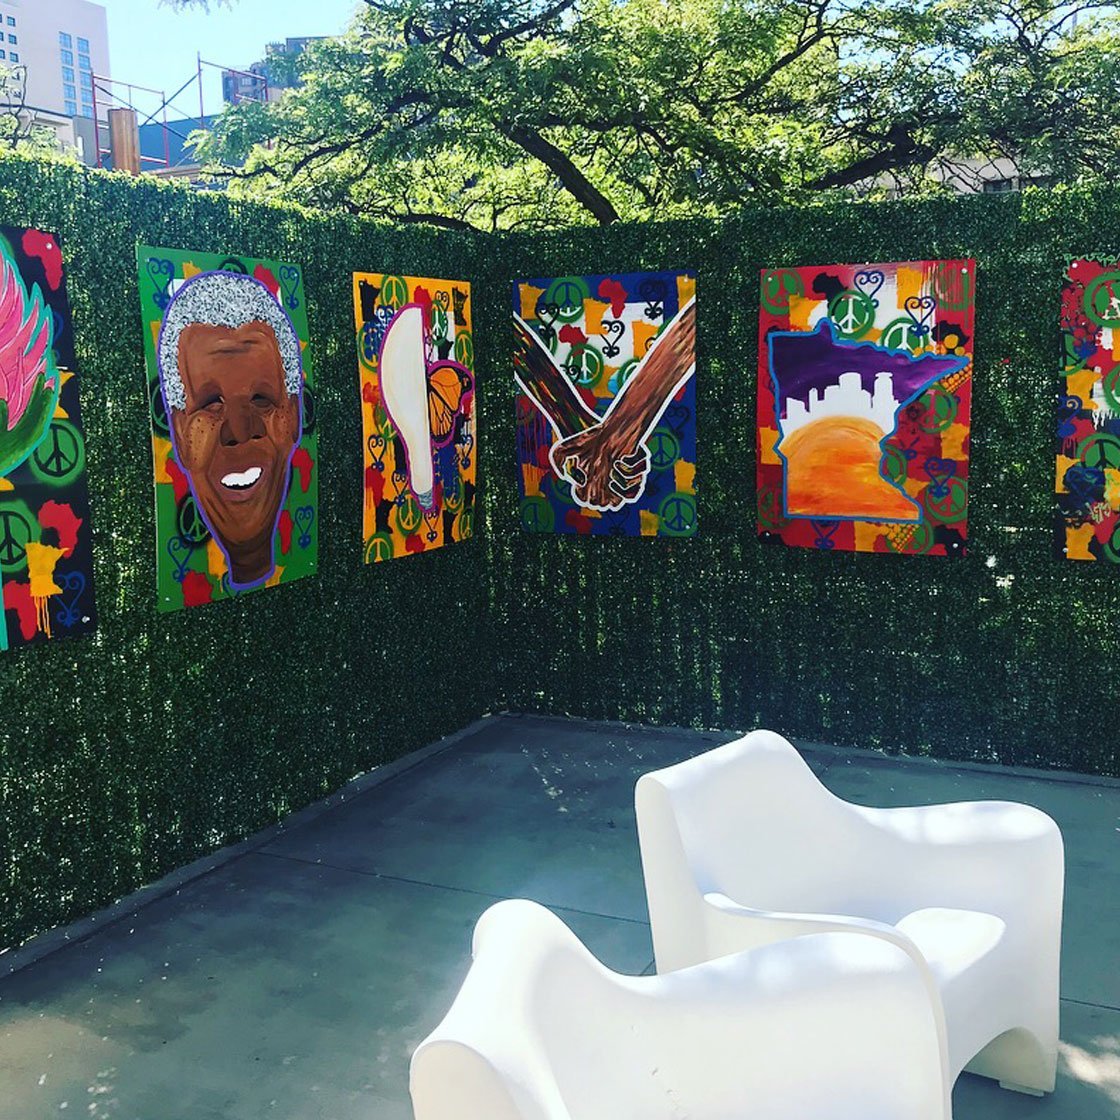 An outdoor patio decorated with vibrant hanging paintings